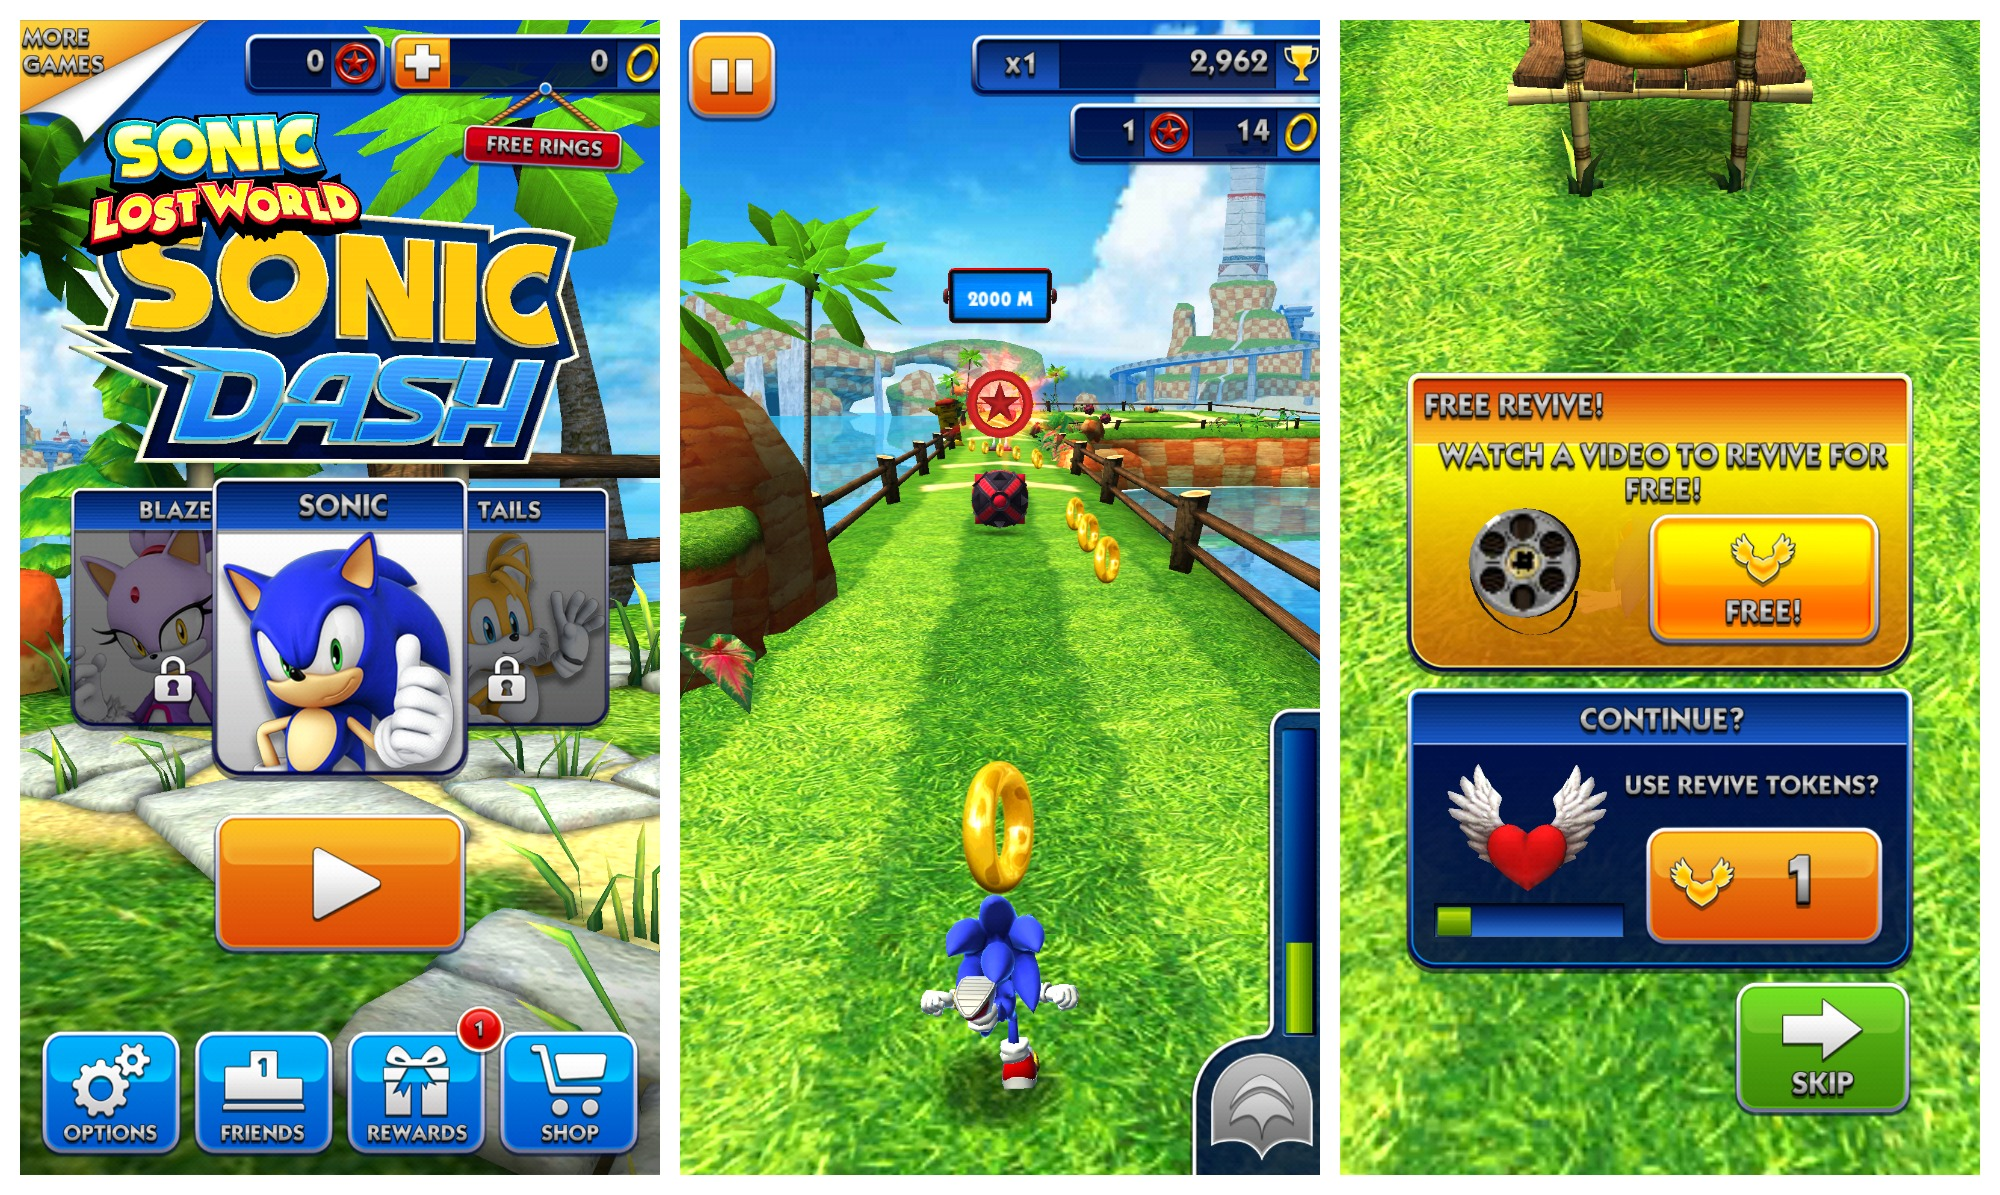 Sonic CD Classic APK OBB v Full Android Game Download